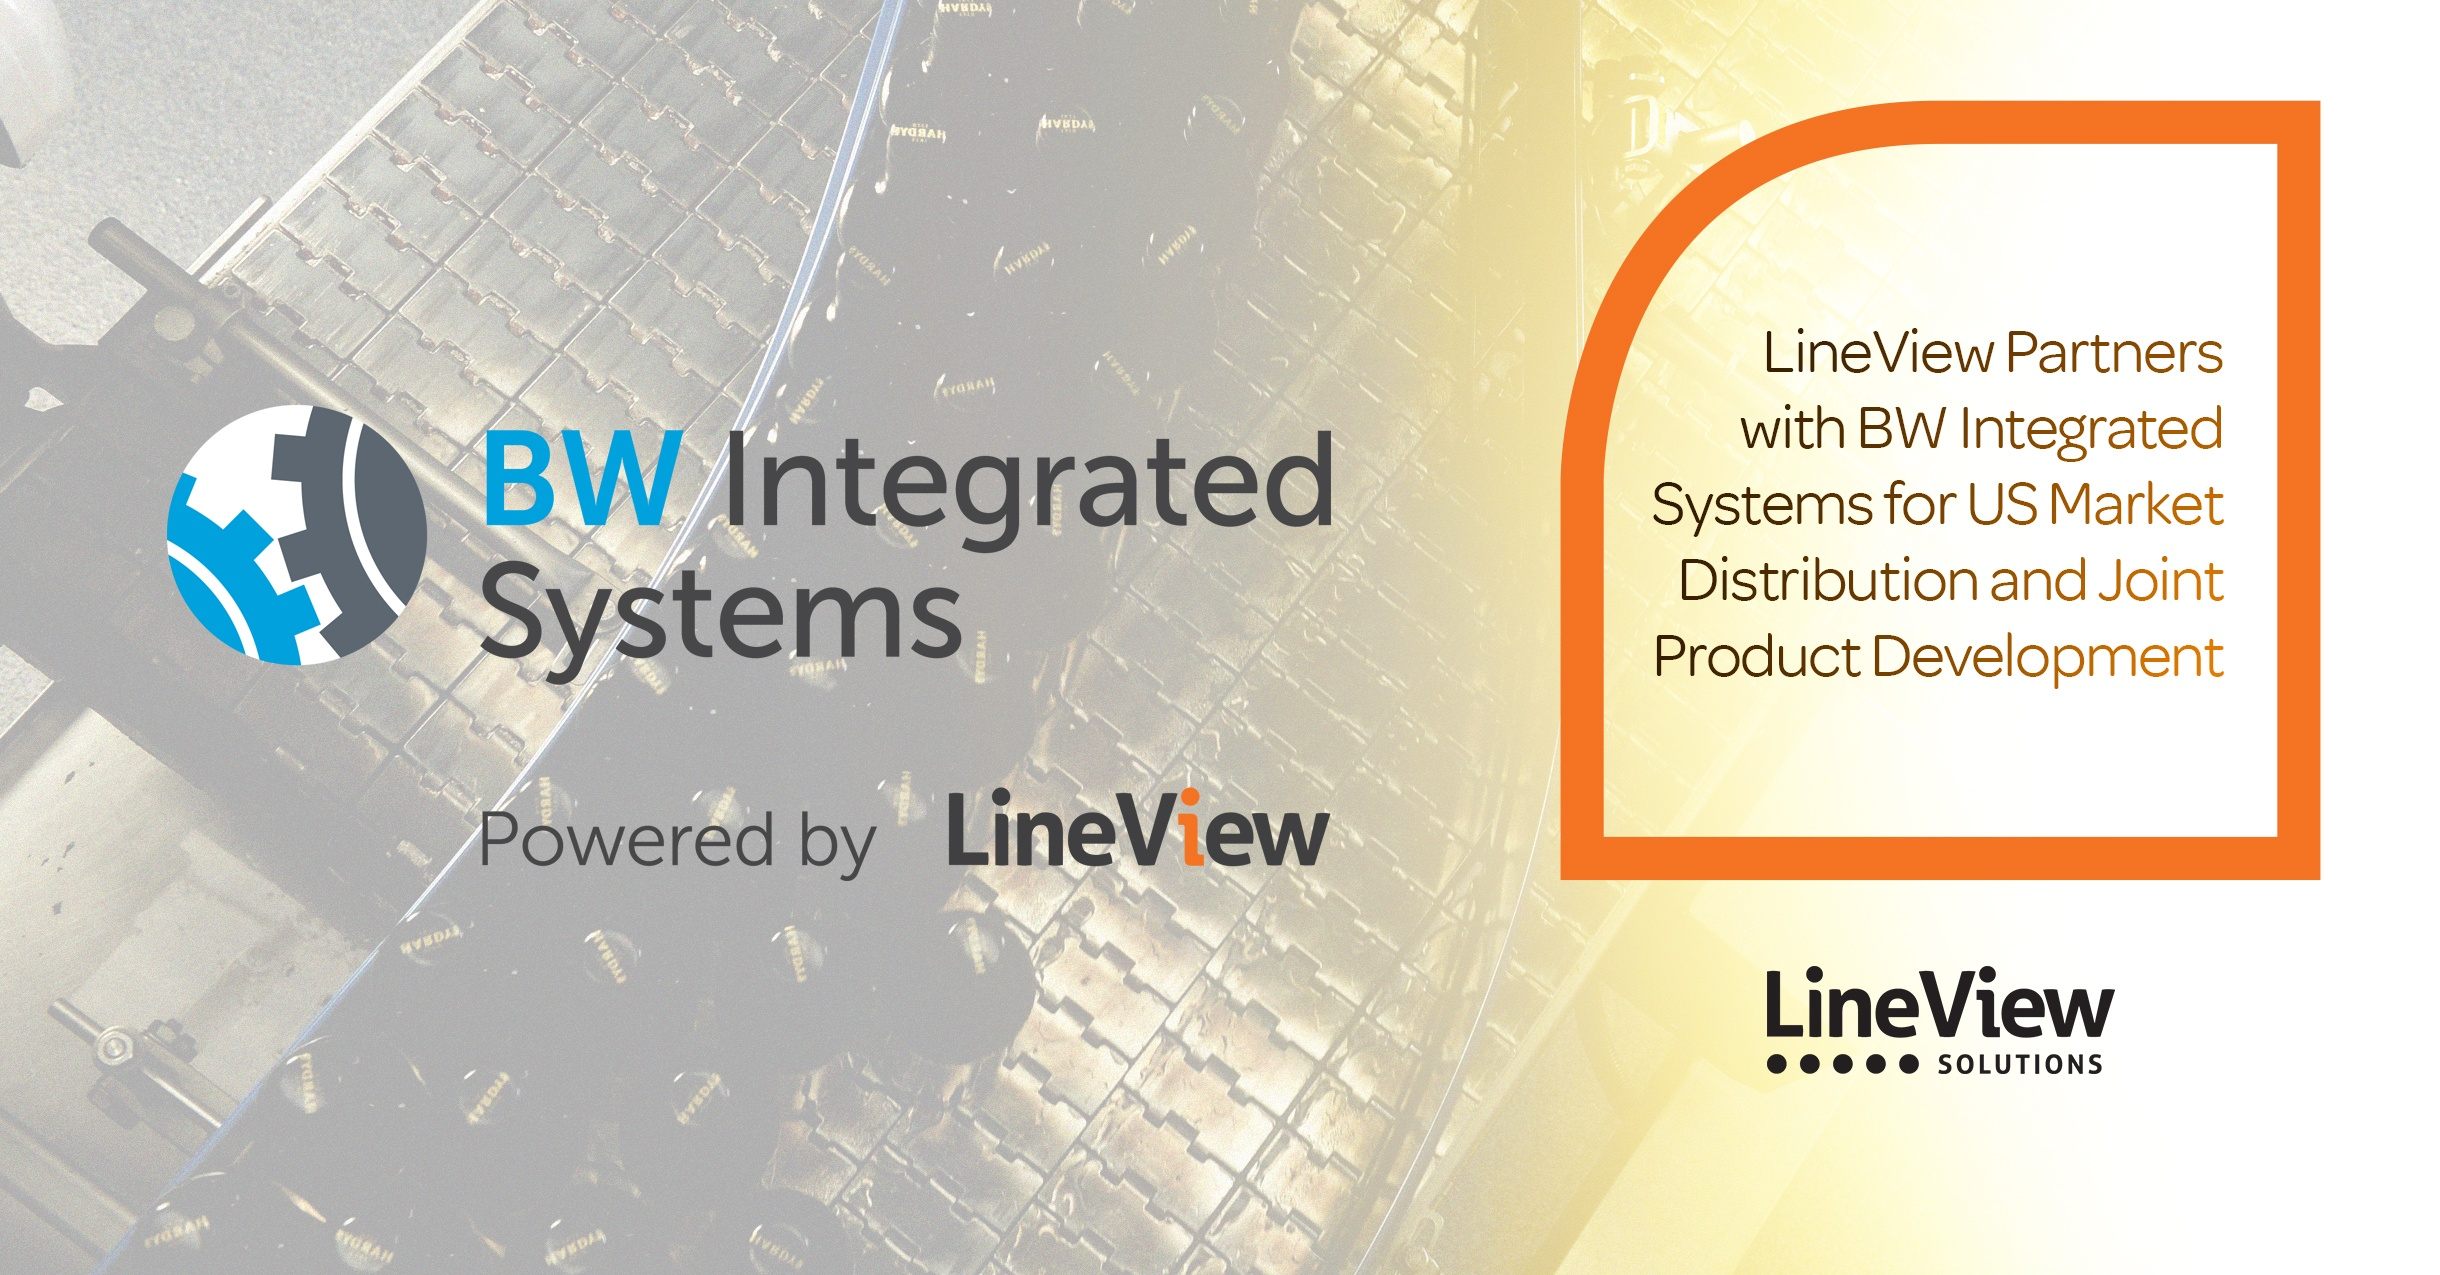 LVS - BW Integrated Systems Partnership (Web Banner)